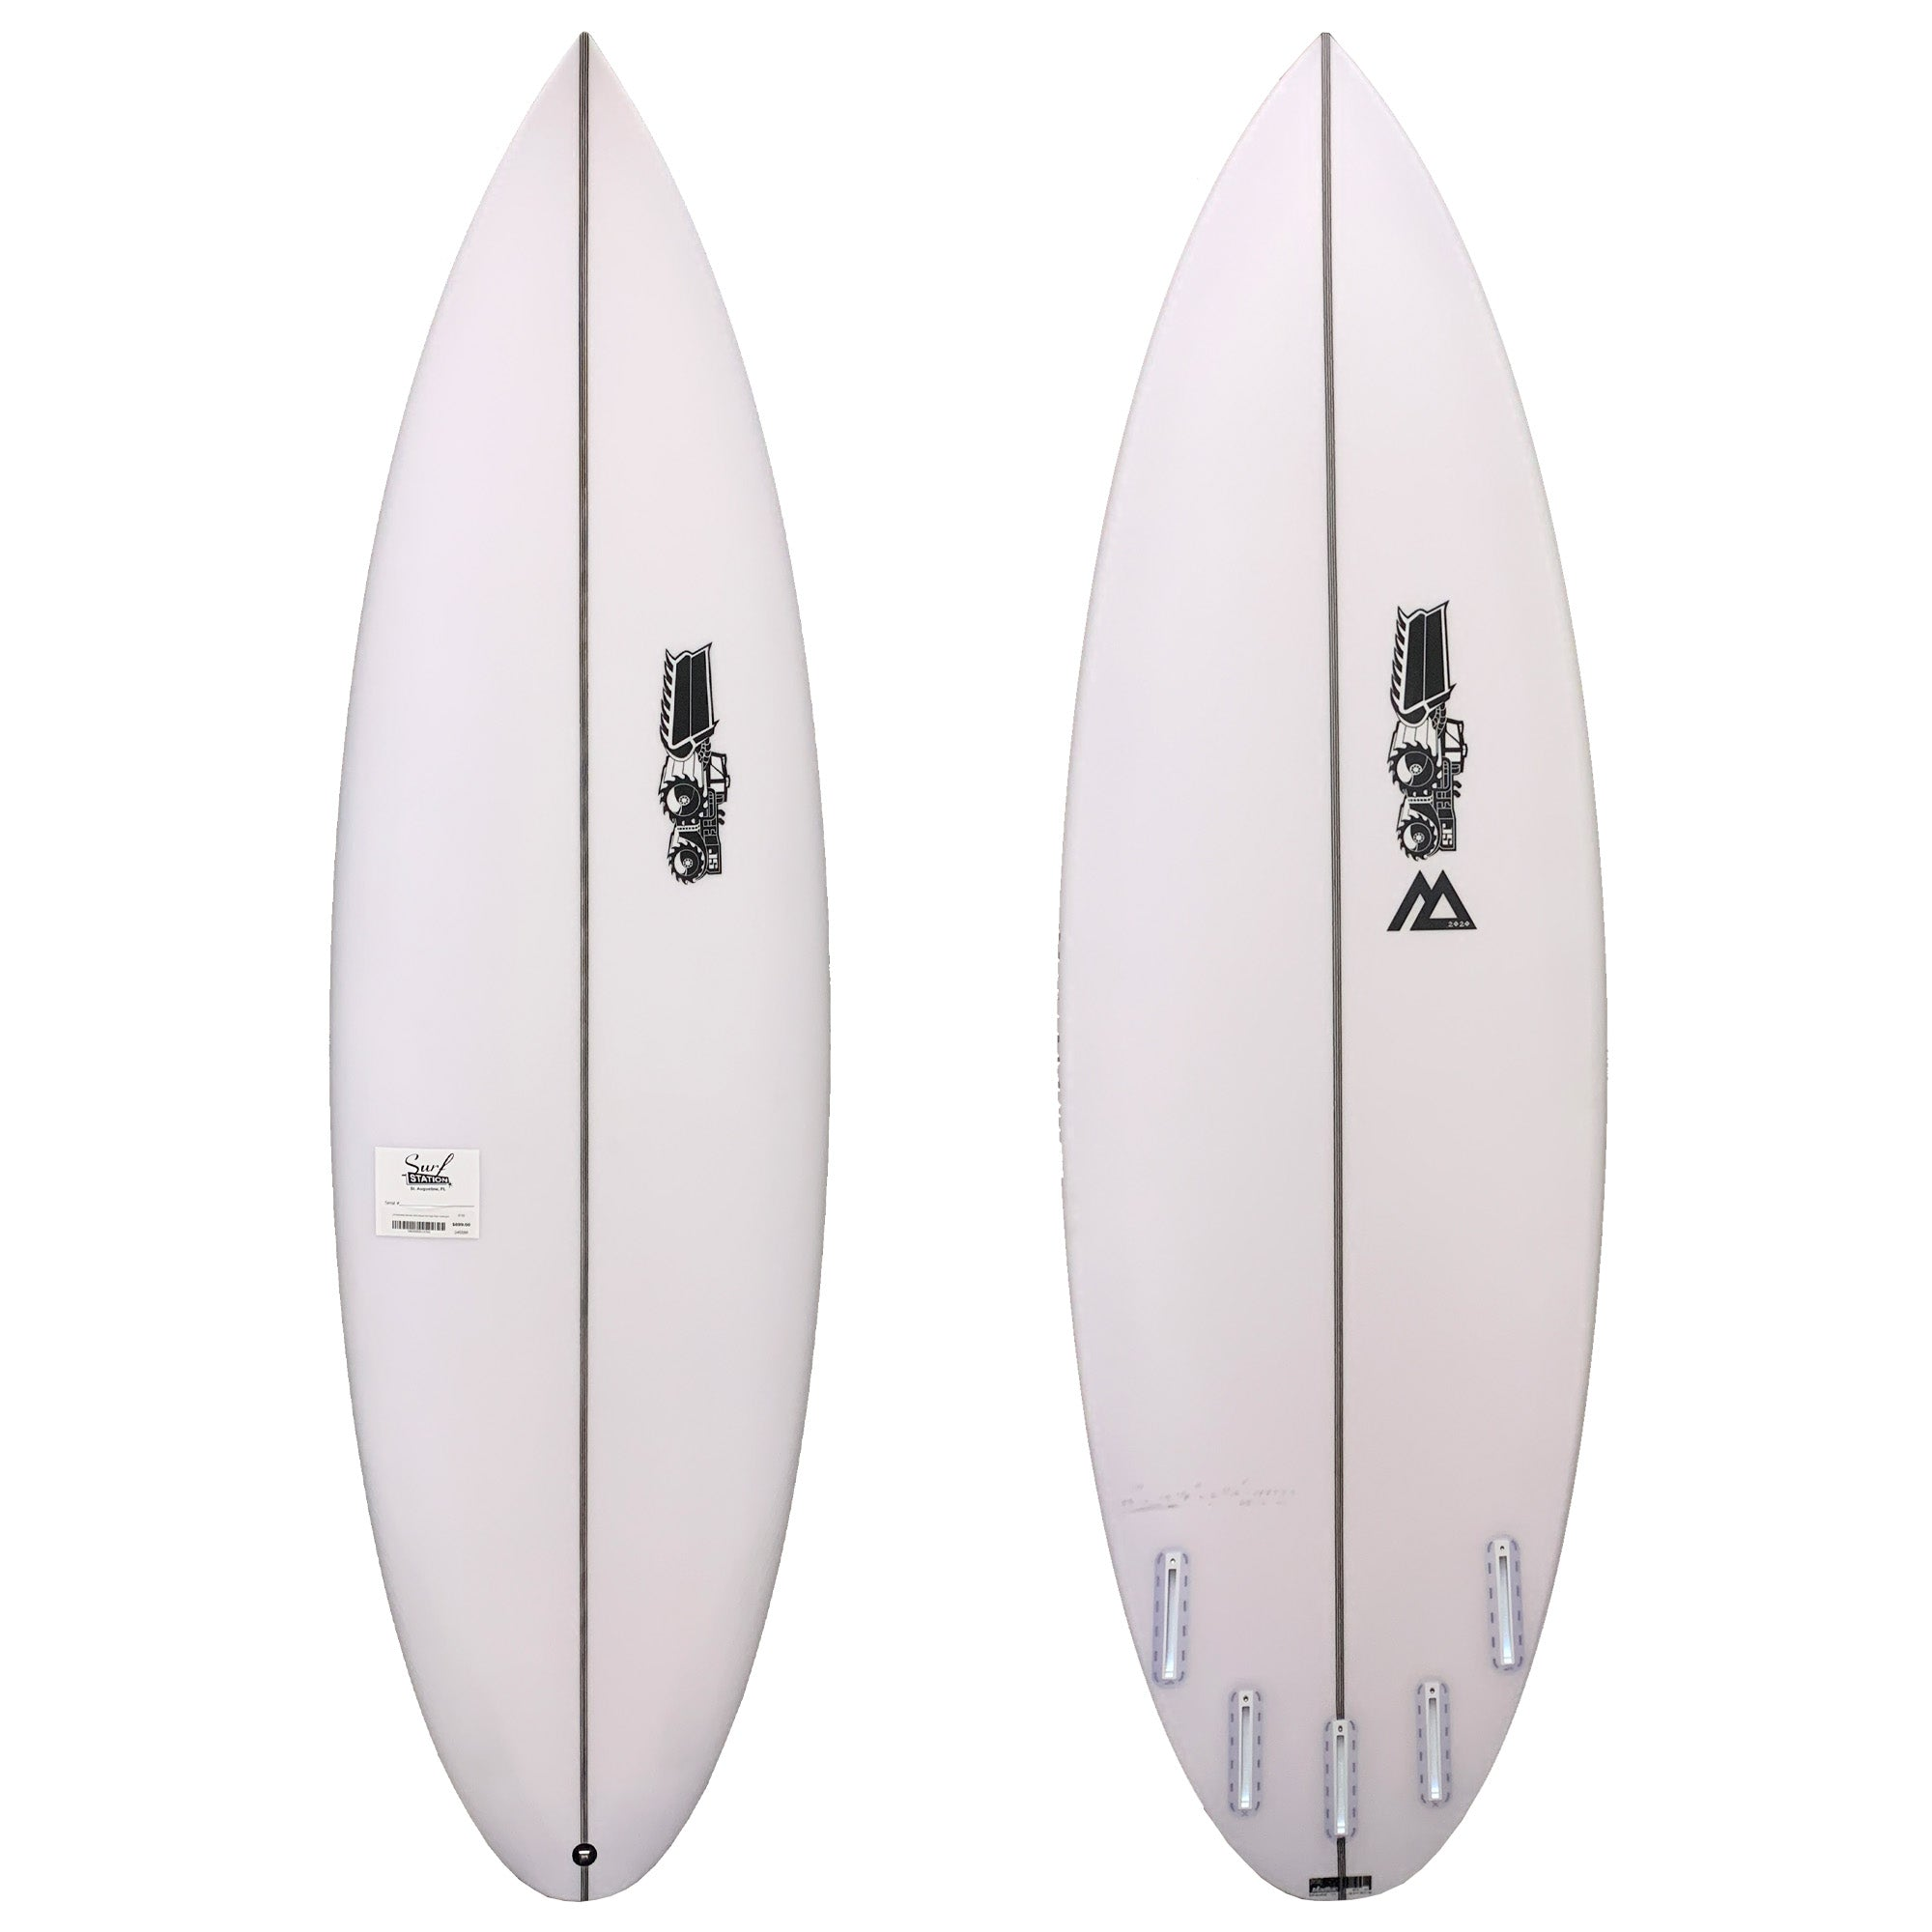 JS Monsta 2020 Round Tail Easy Rider Surfboard - Futures